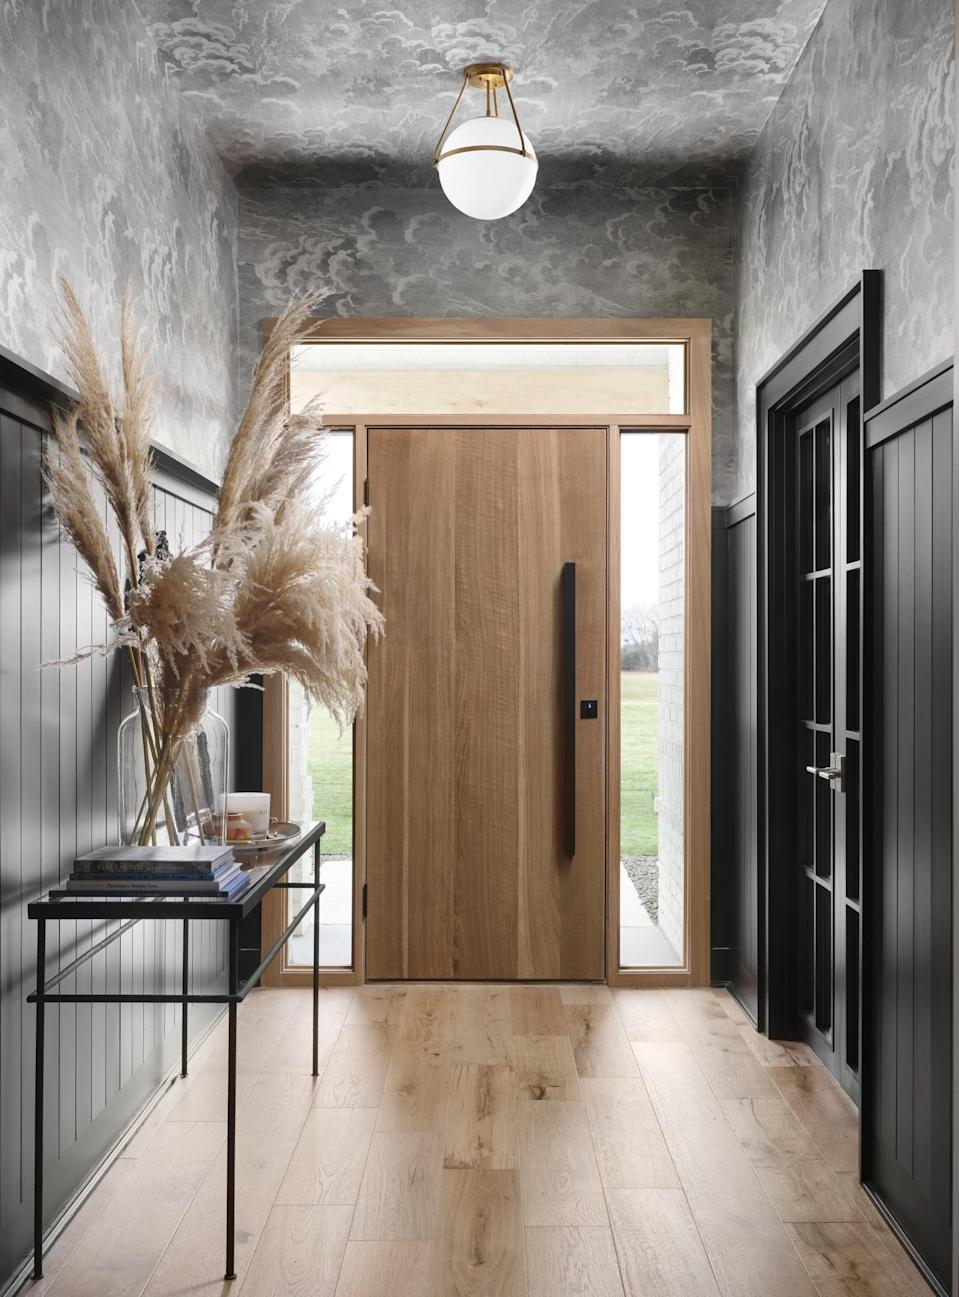 <p>Chip and Joanna turned a lackluster entry into a dramatic one filled with black panelling and fully wallpapered walls and ceilings. To accentuate the moody mid-century vibe, Chip and Joanna installed a window-framed white oak door and a brass-detailed light fixture.</p>